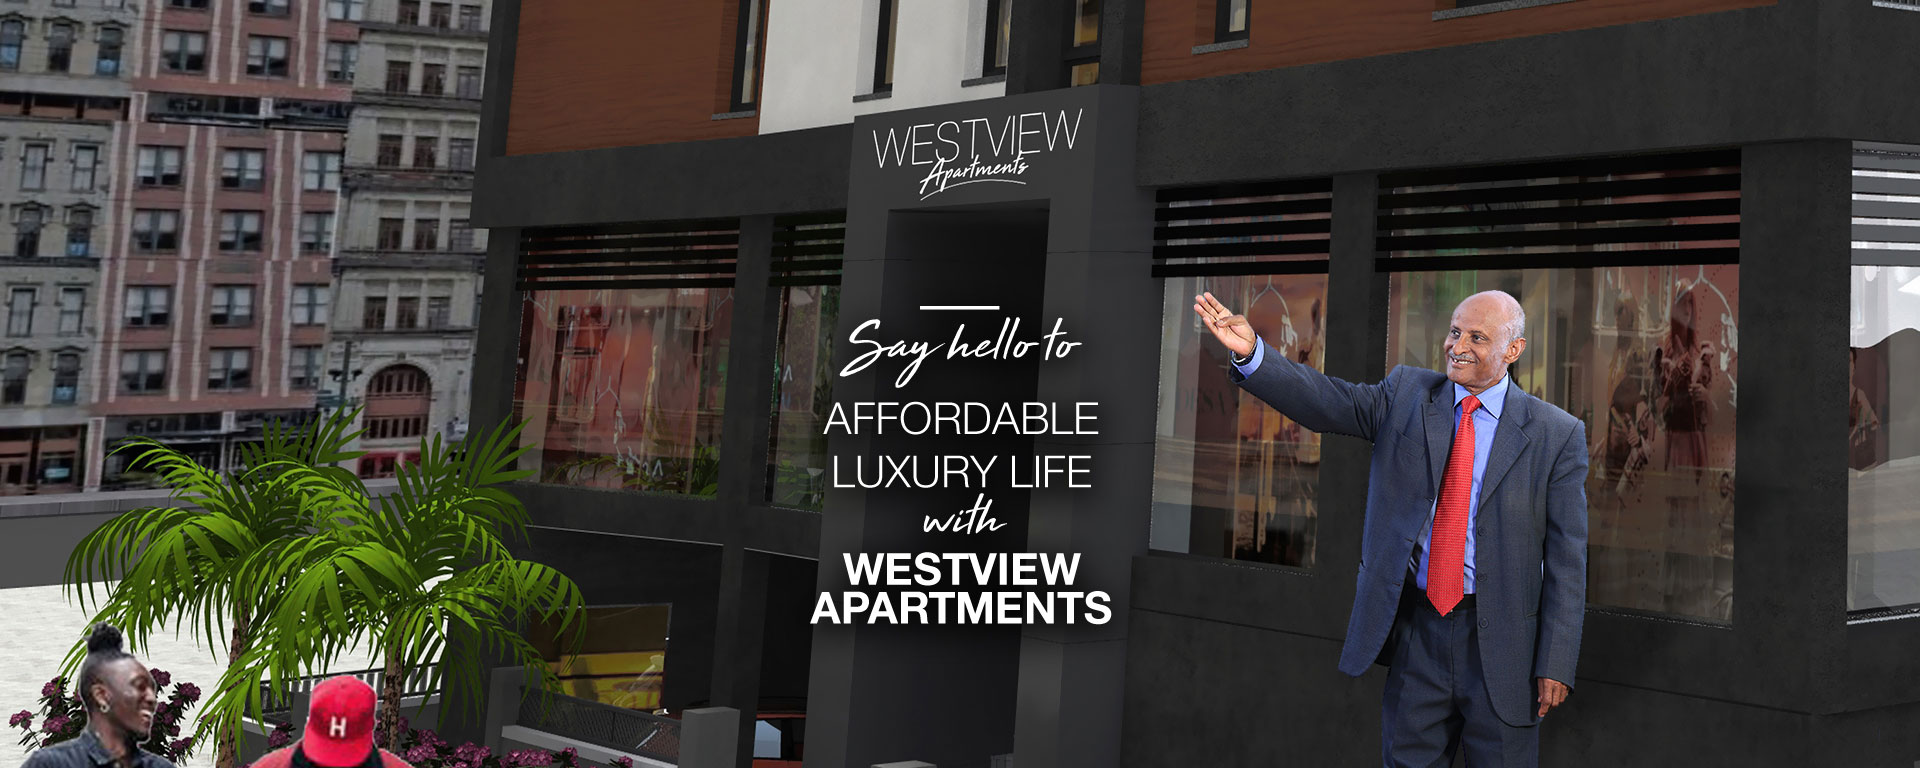 Affordable luxury life with westview apartments